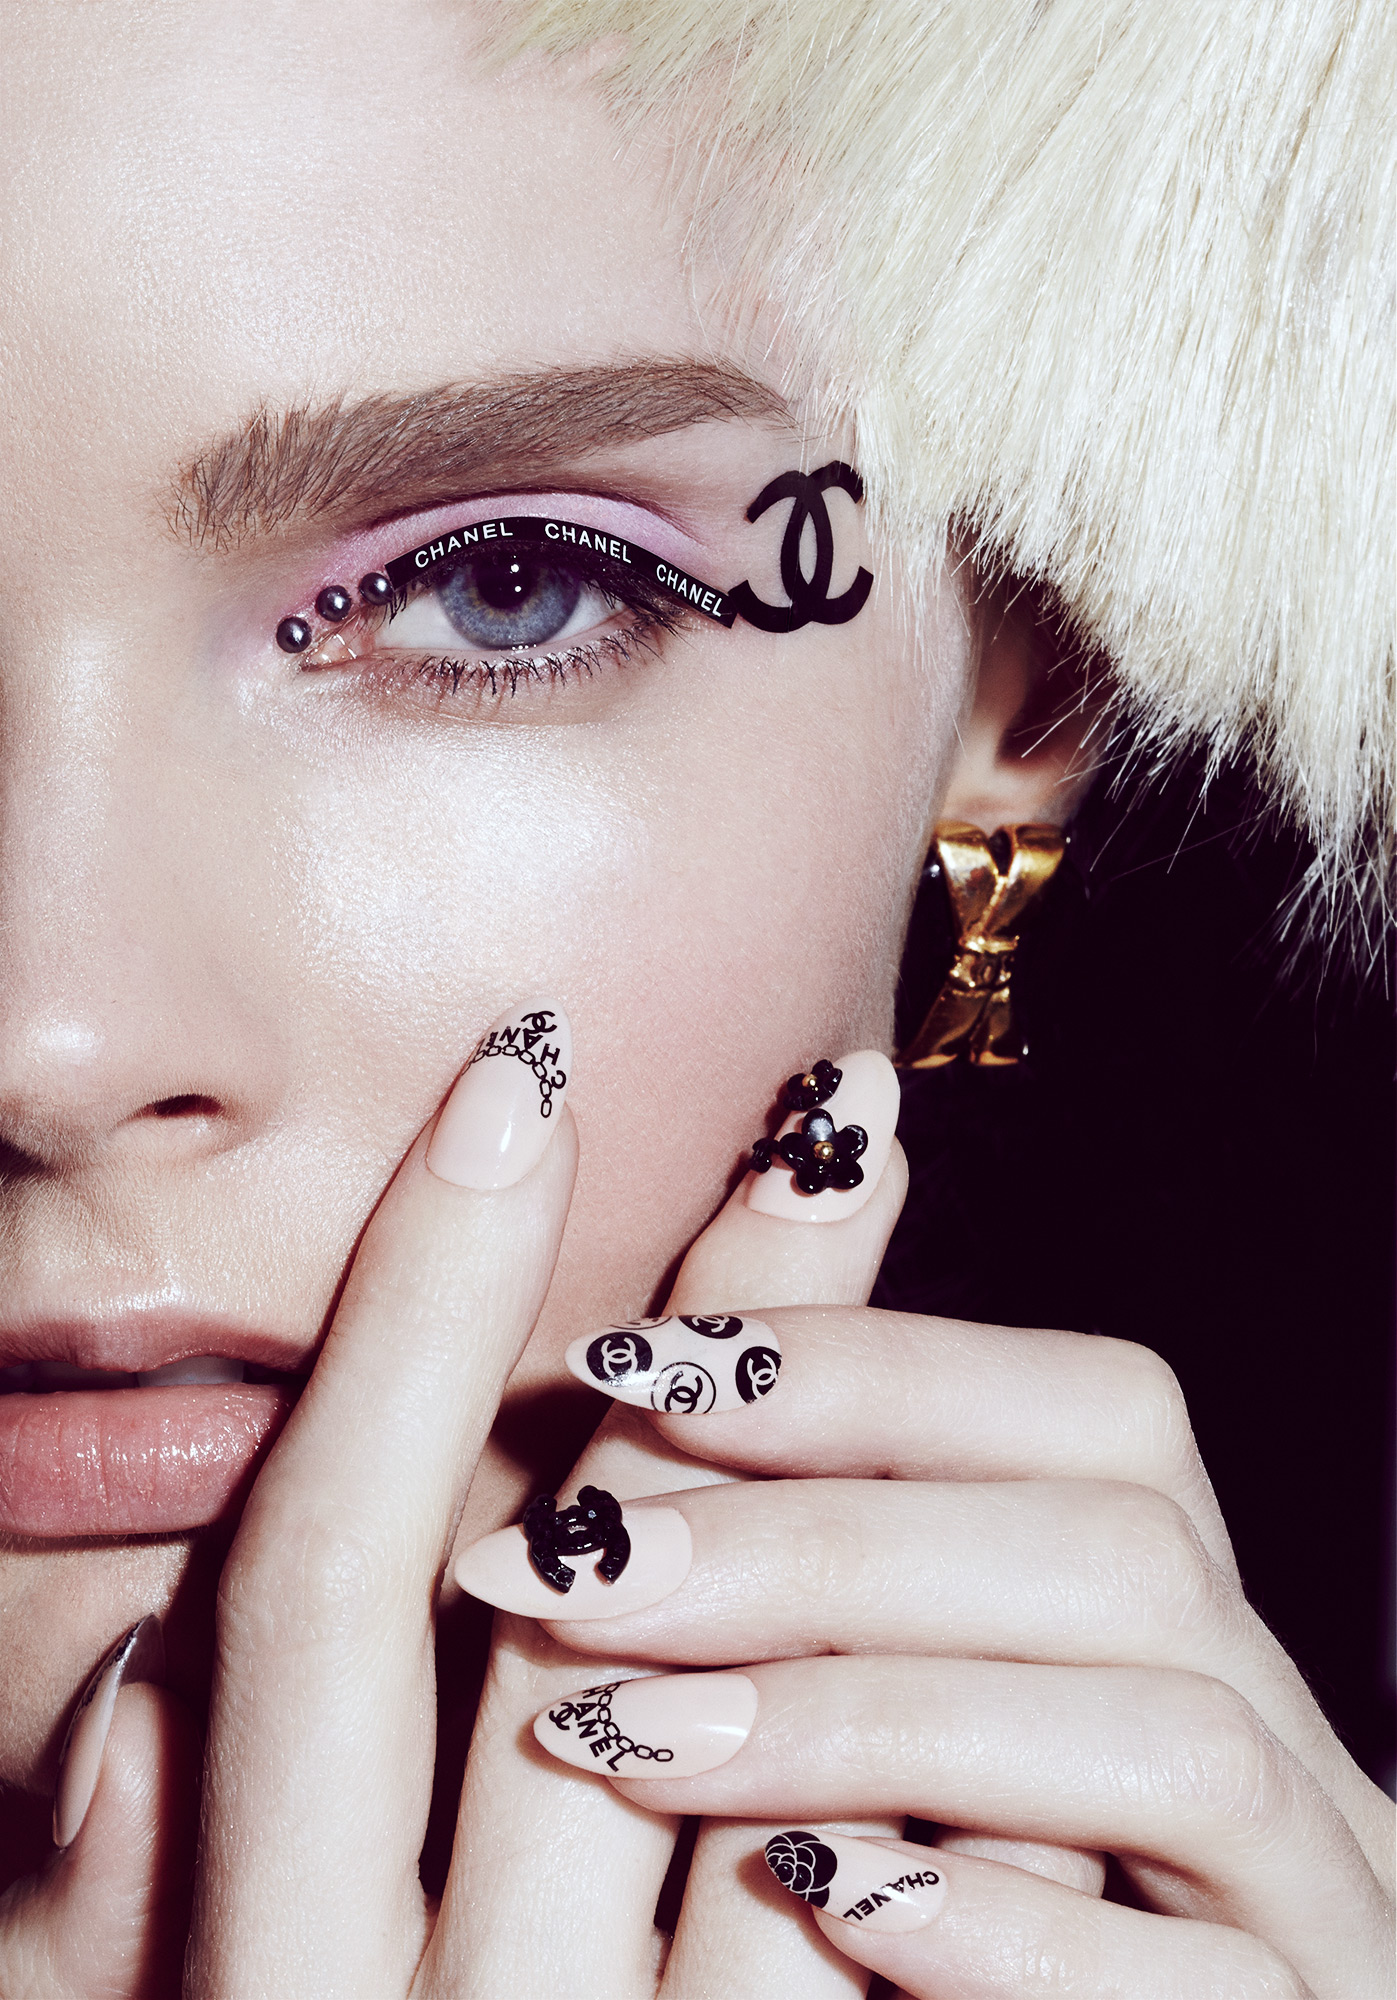 chanel-nail-art-designer-nail-tattoos-be.jpg